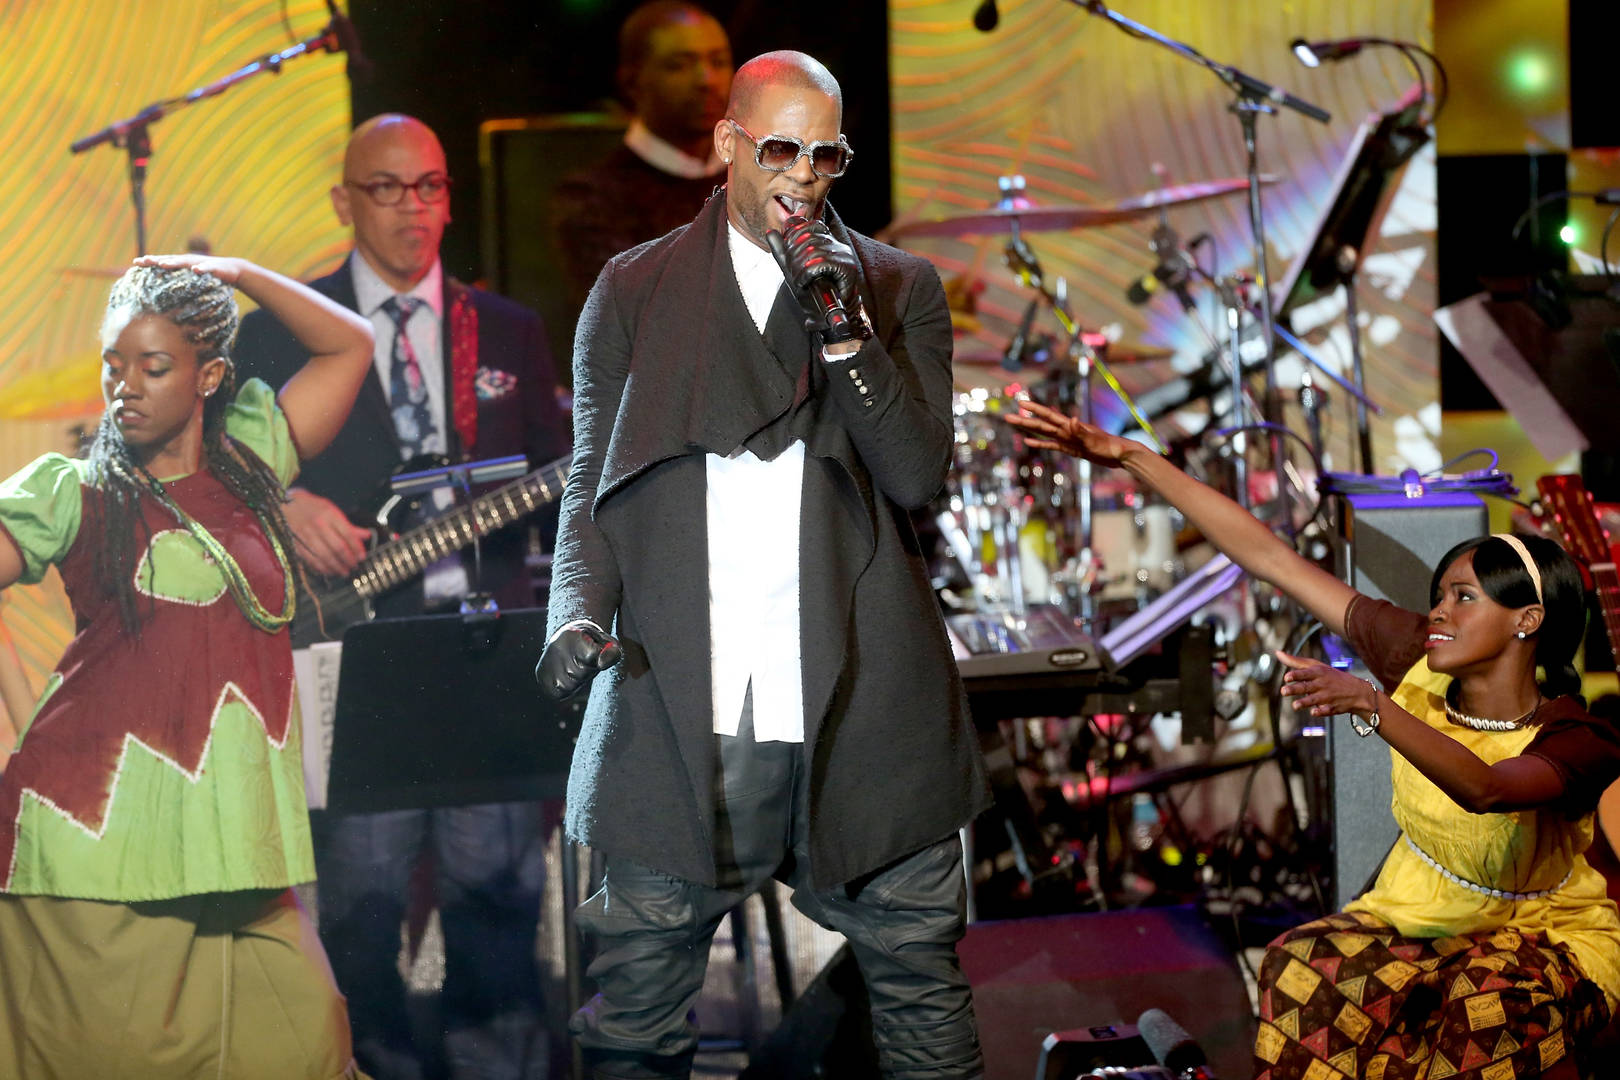 R. Kelly celebrates birthday amid docuseries outcry